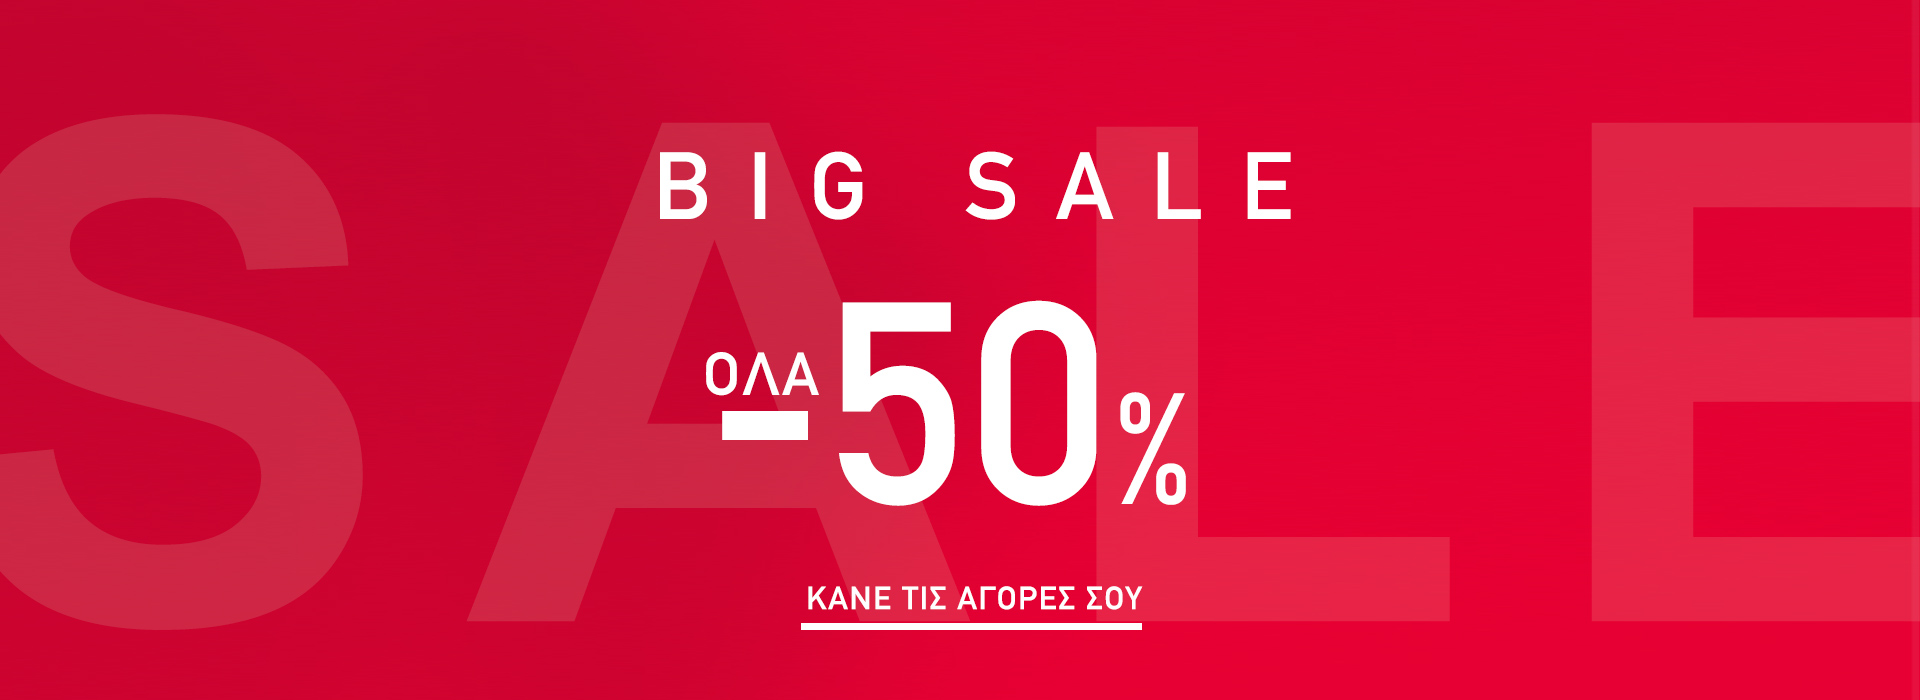 Big Sales - Online Fashion